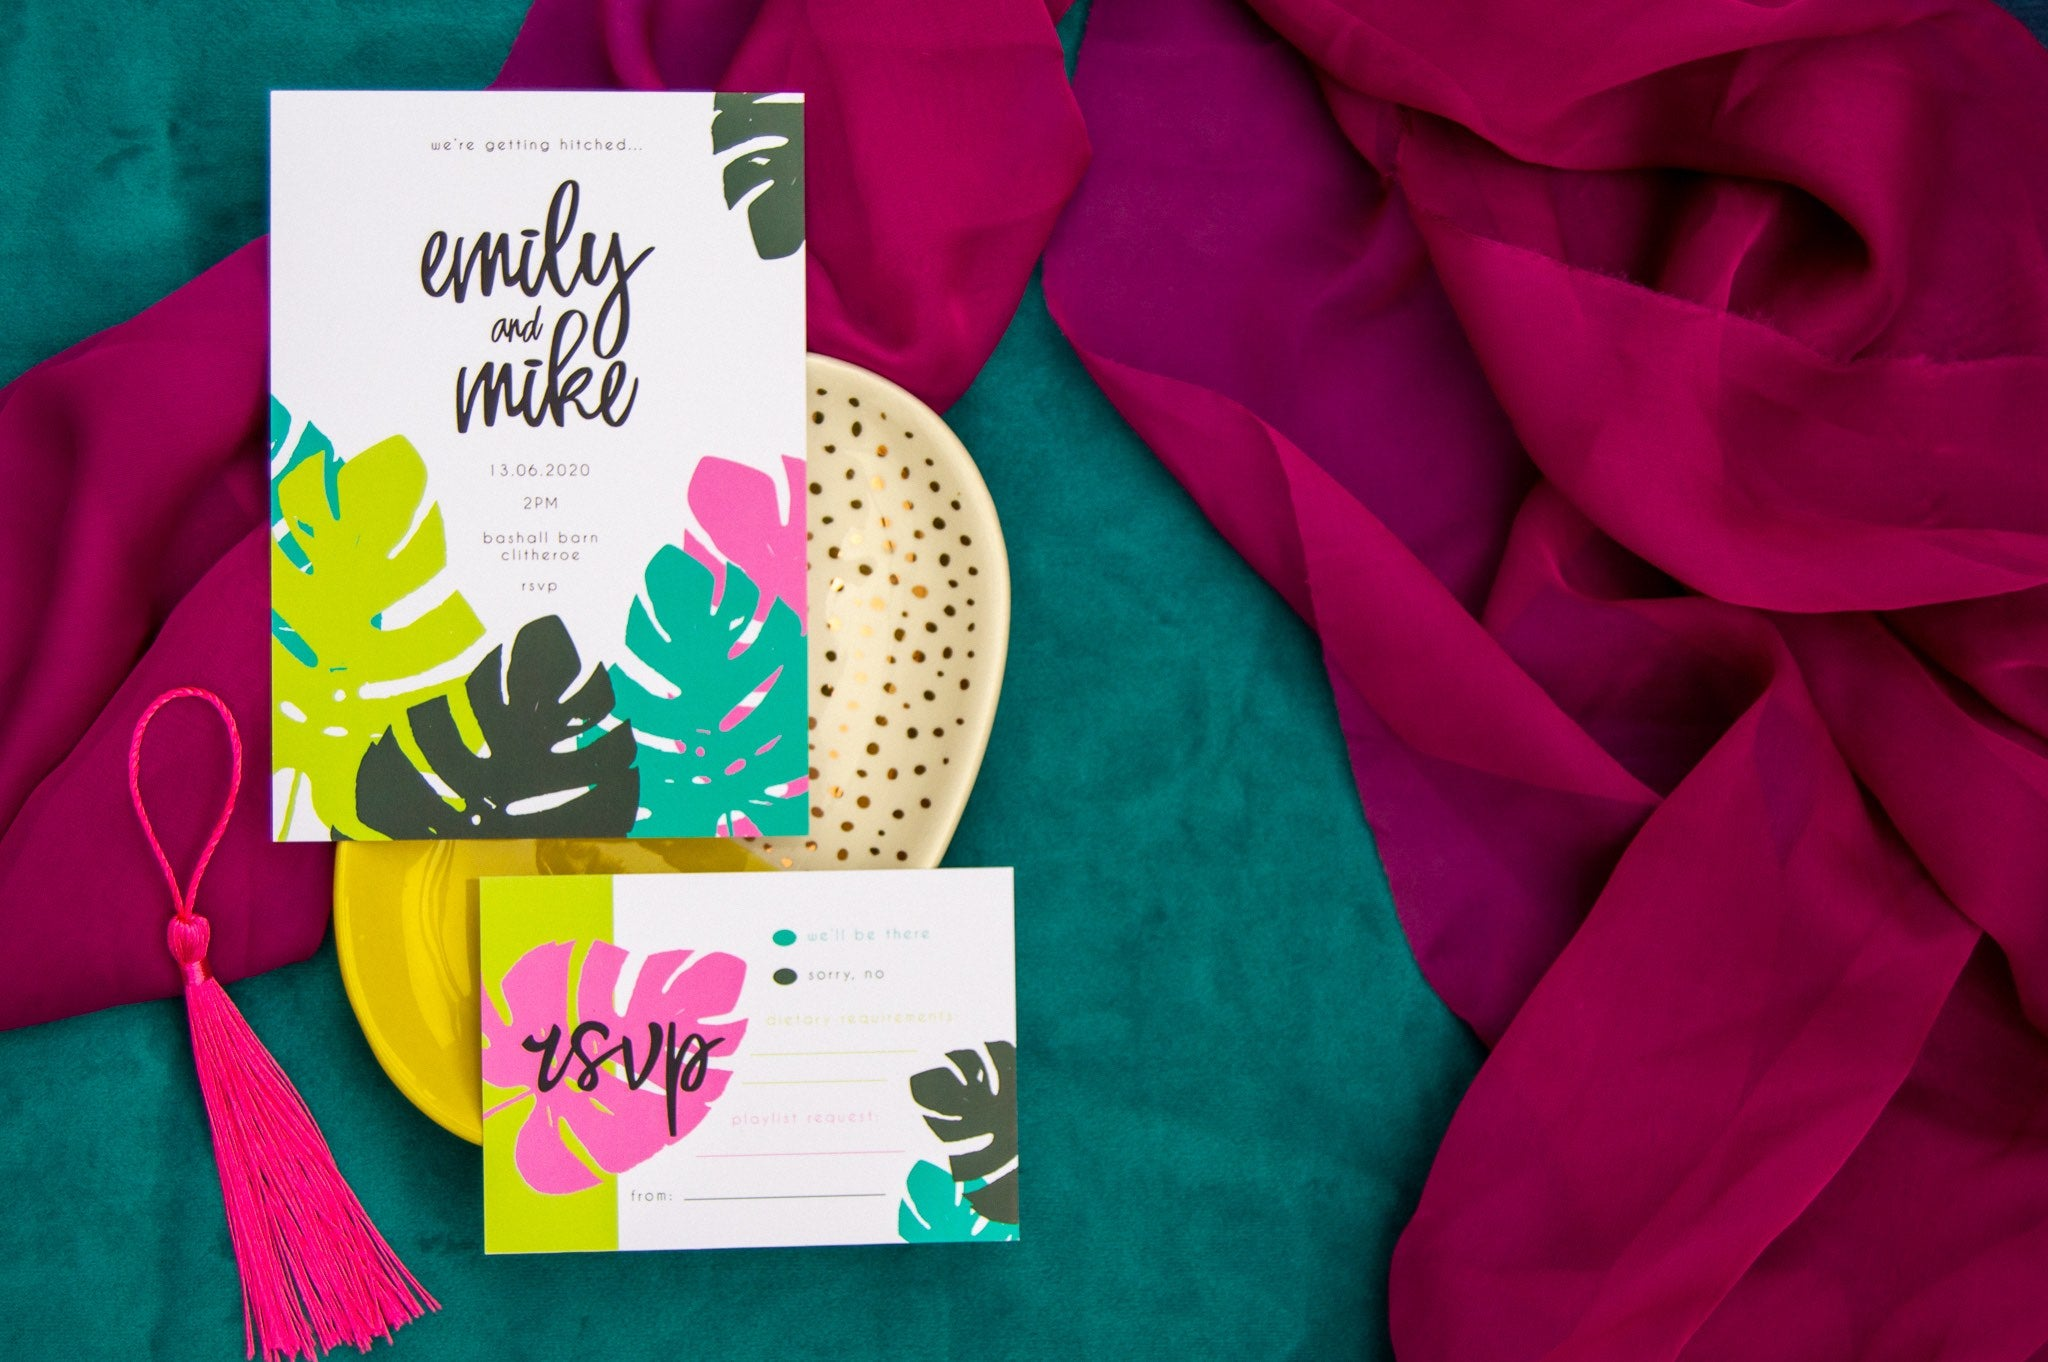 Wedding invitation and RSVP cards to the left of the screen with bold colourful leaf pattern, laid on pink and teal fabric background.